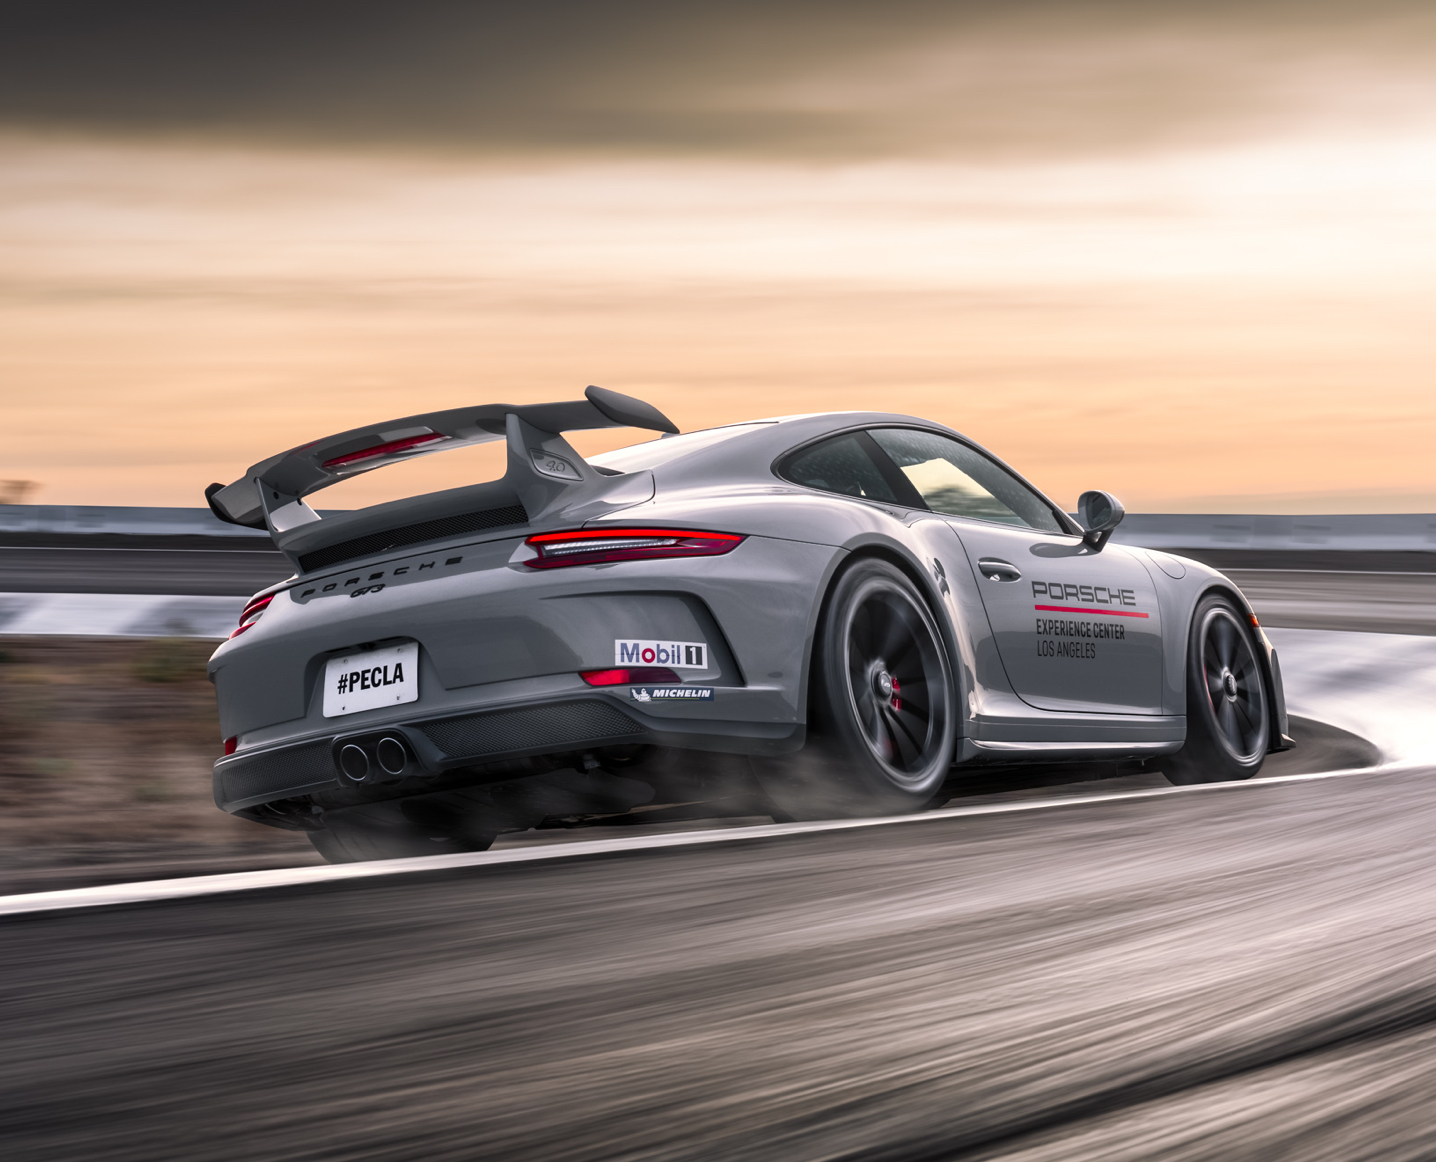 Gray 911 GT3 driving